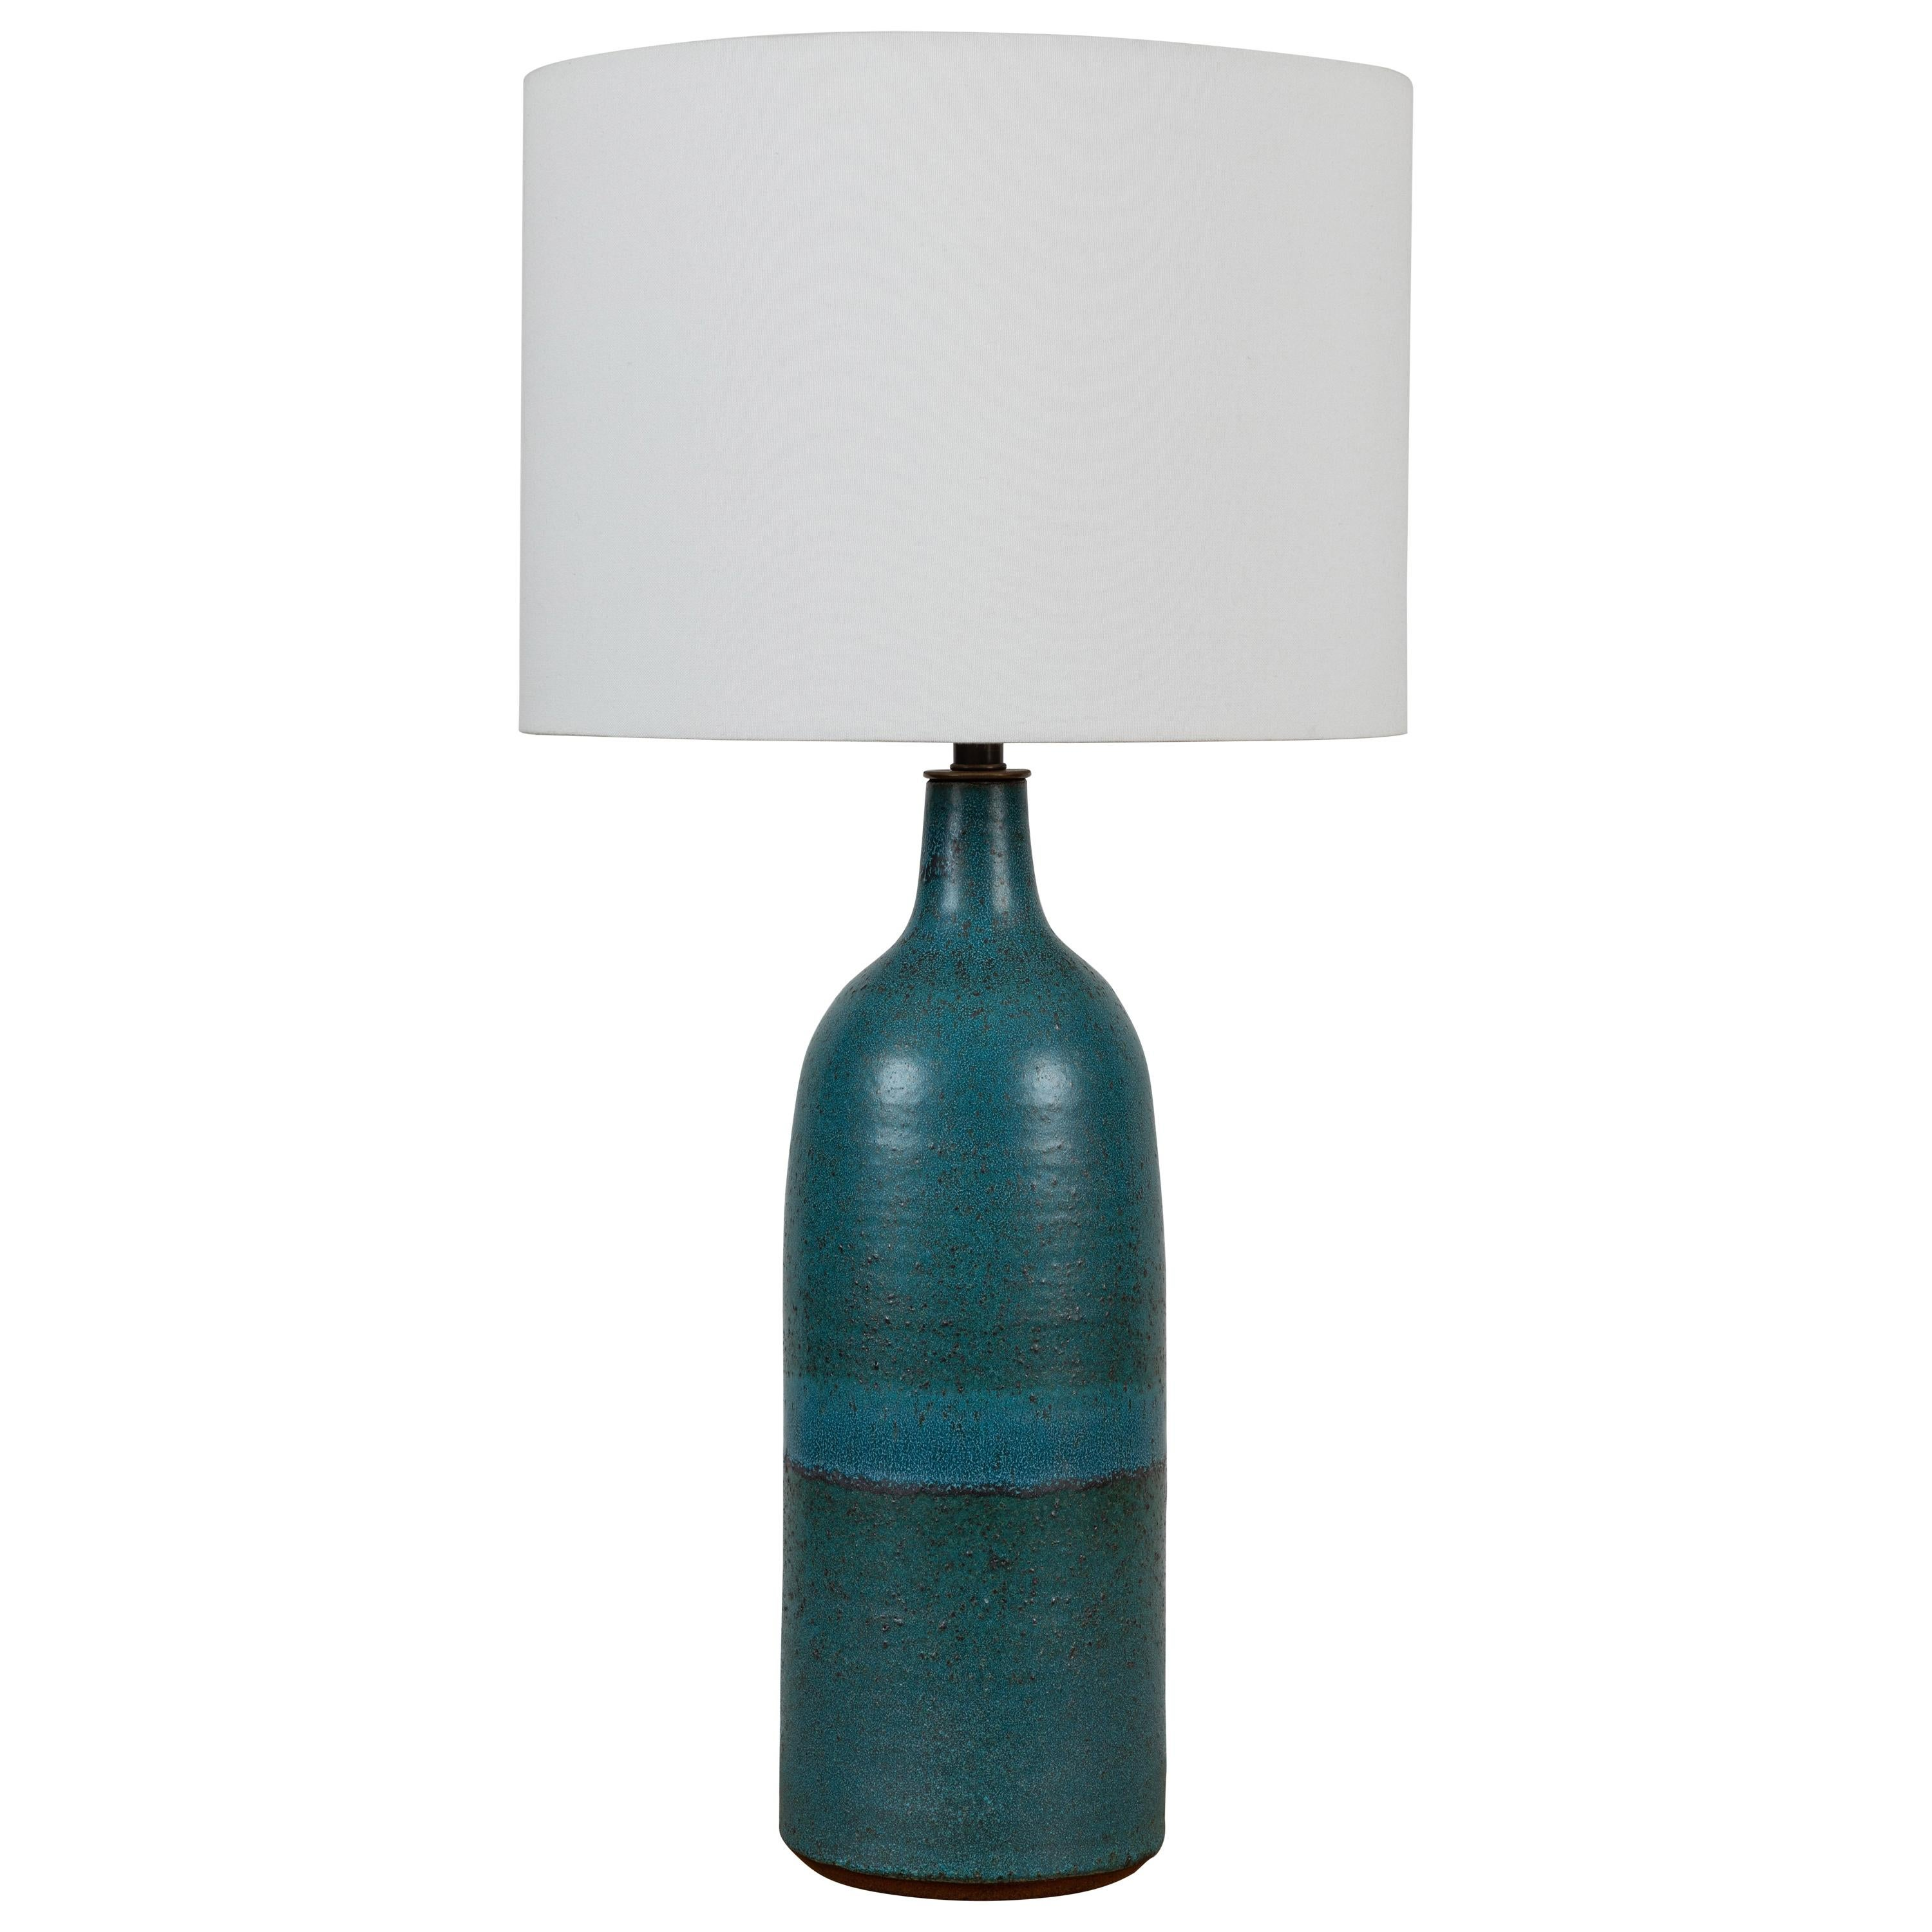 Extra Large Turquoise Bottle Lamp by Victoria Morris for Lawson-Fenning